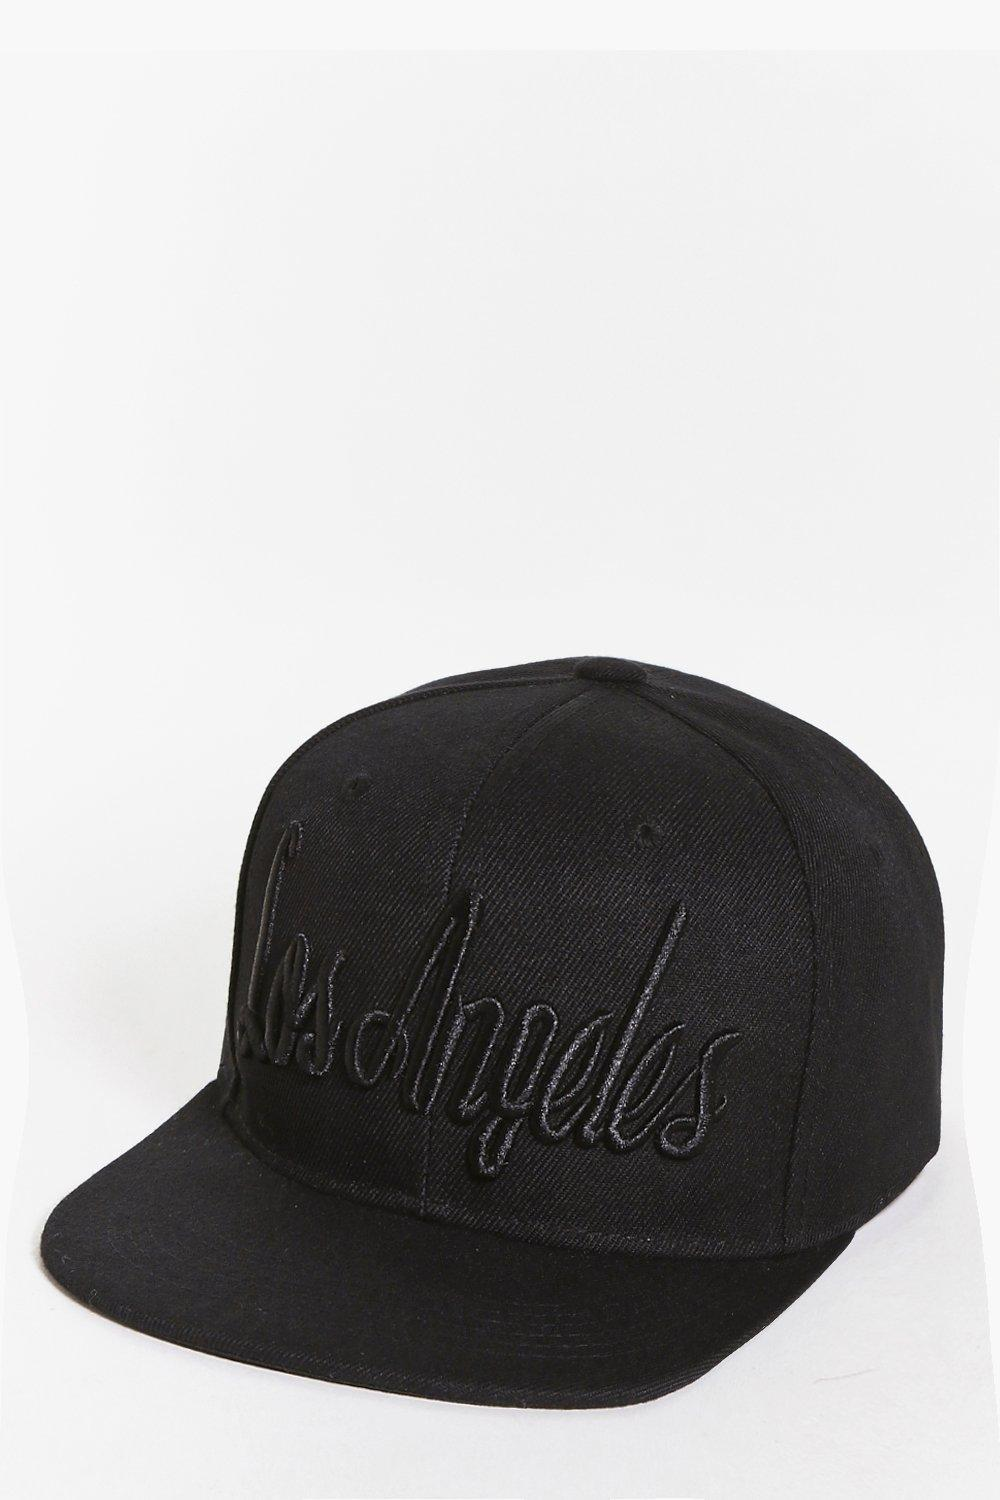 Los Angeles Embroidered Snapback